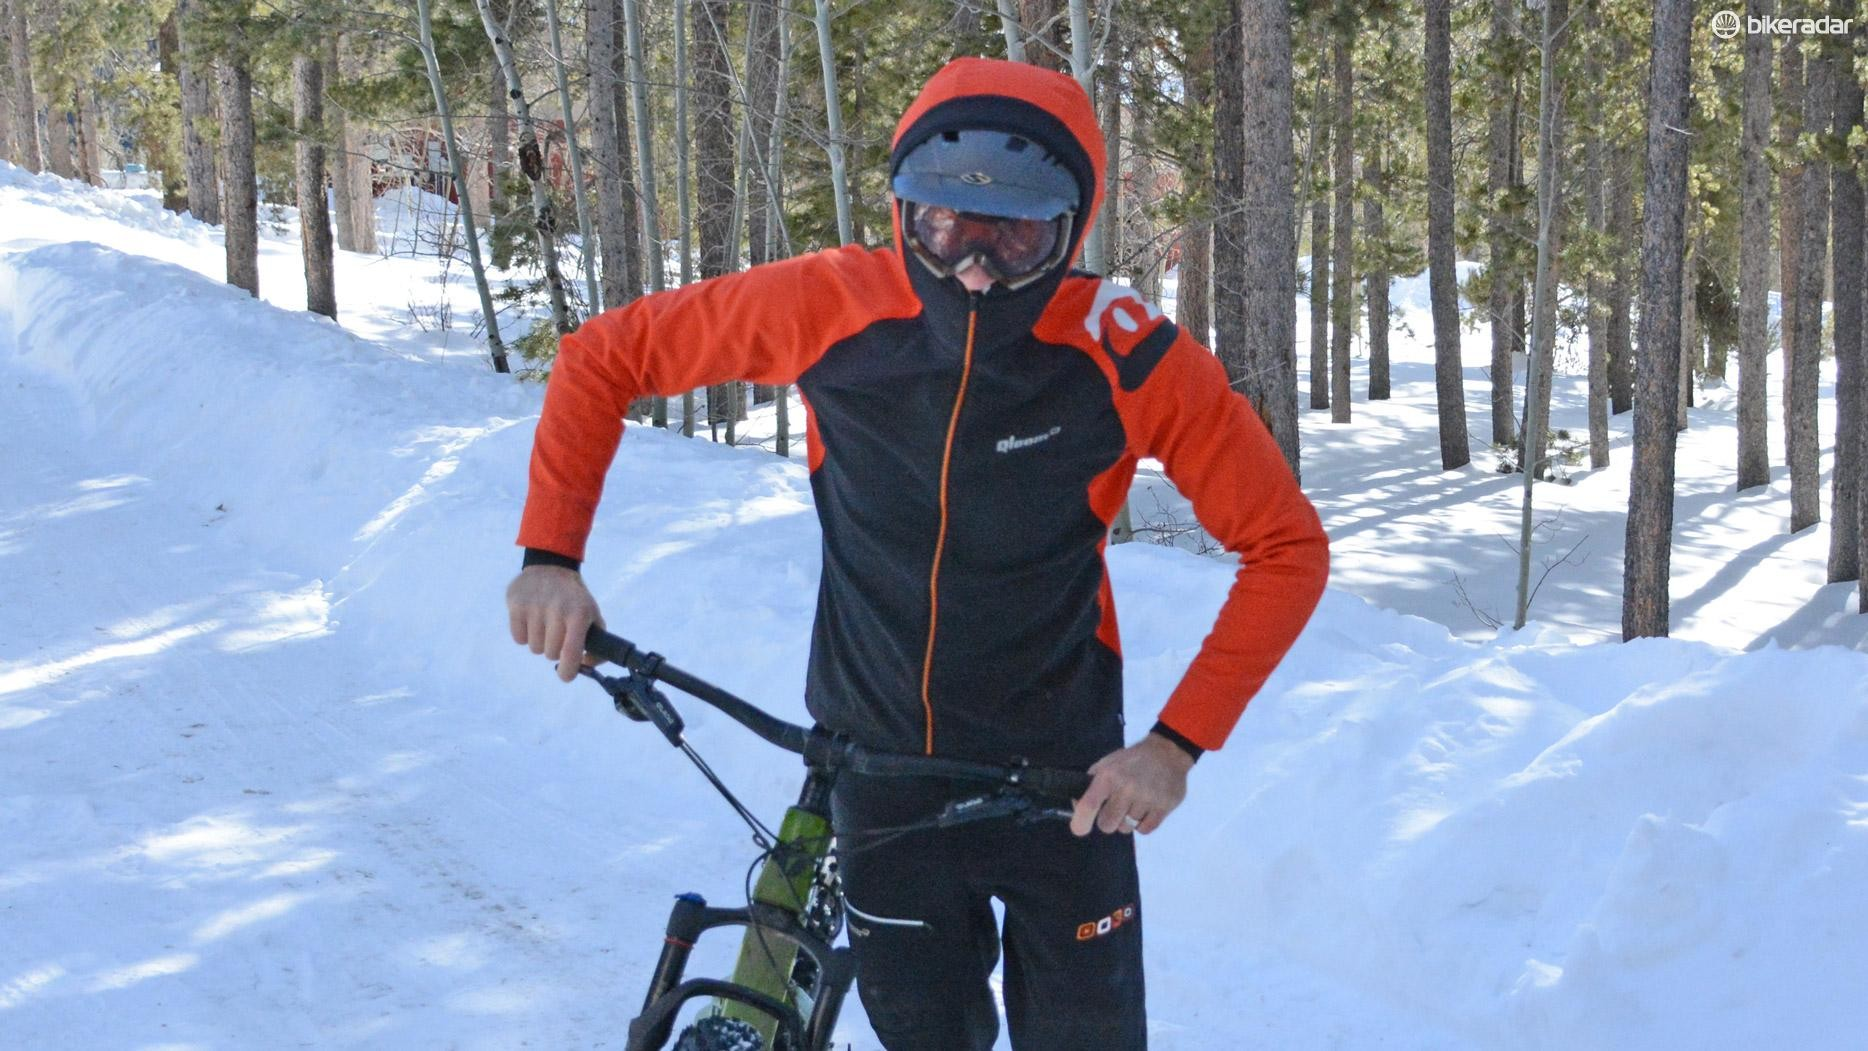 The Watson Lake jacket also worked nicely with a ski helmet and goggles